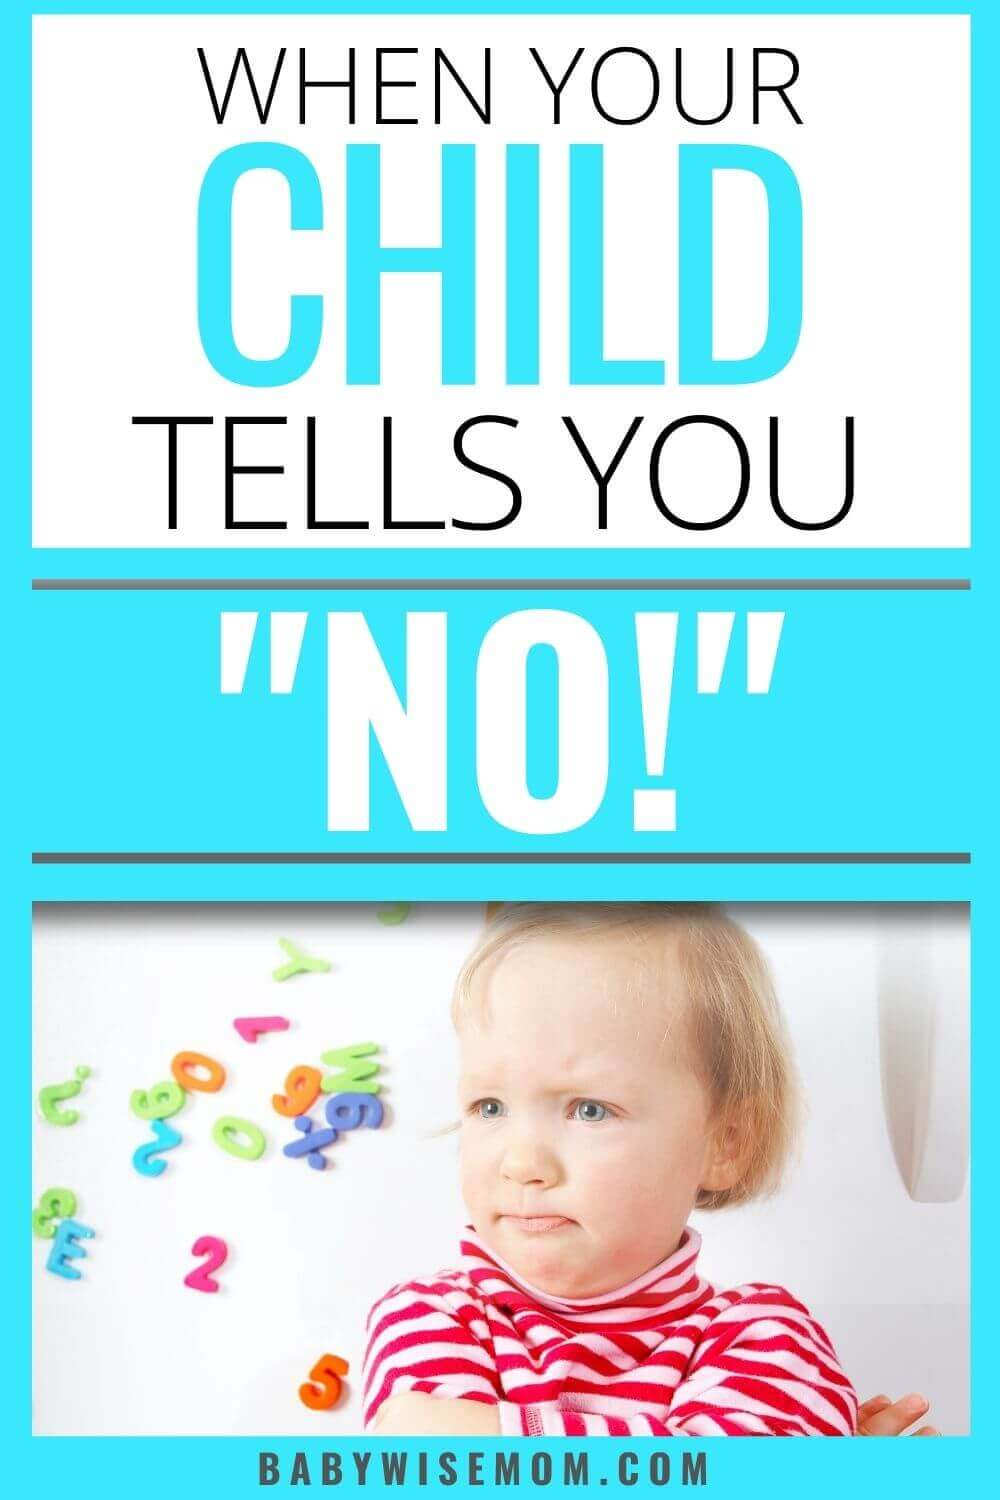 What to do when your child tells you no